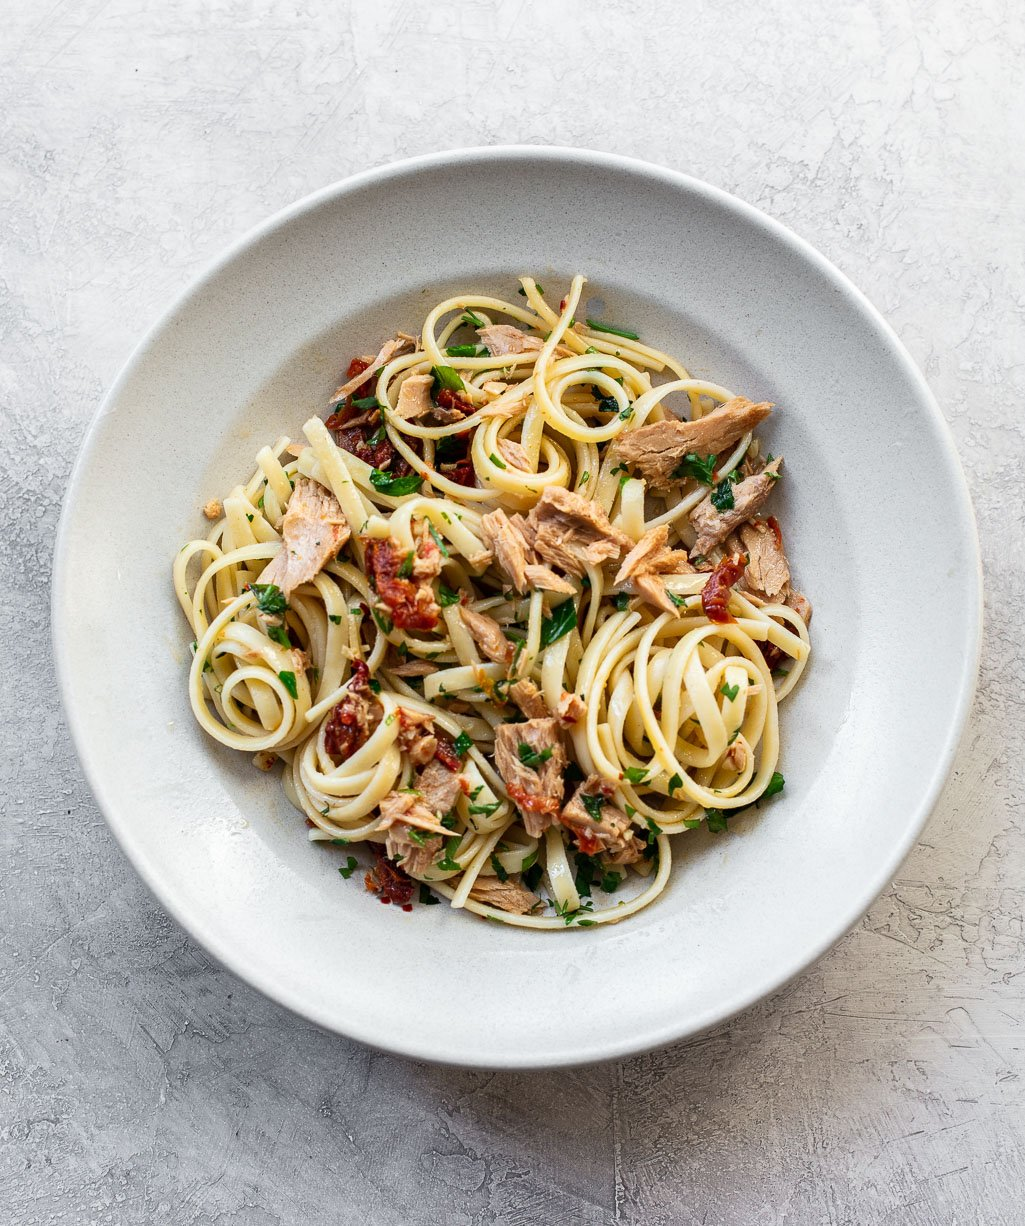 Pantry Tuna Pasta with Garlic Olive Oil